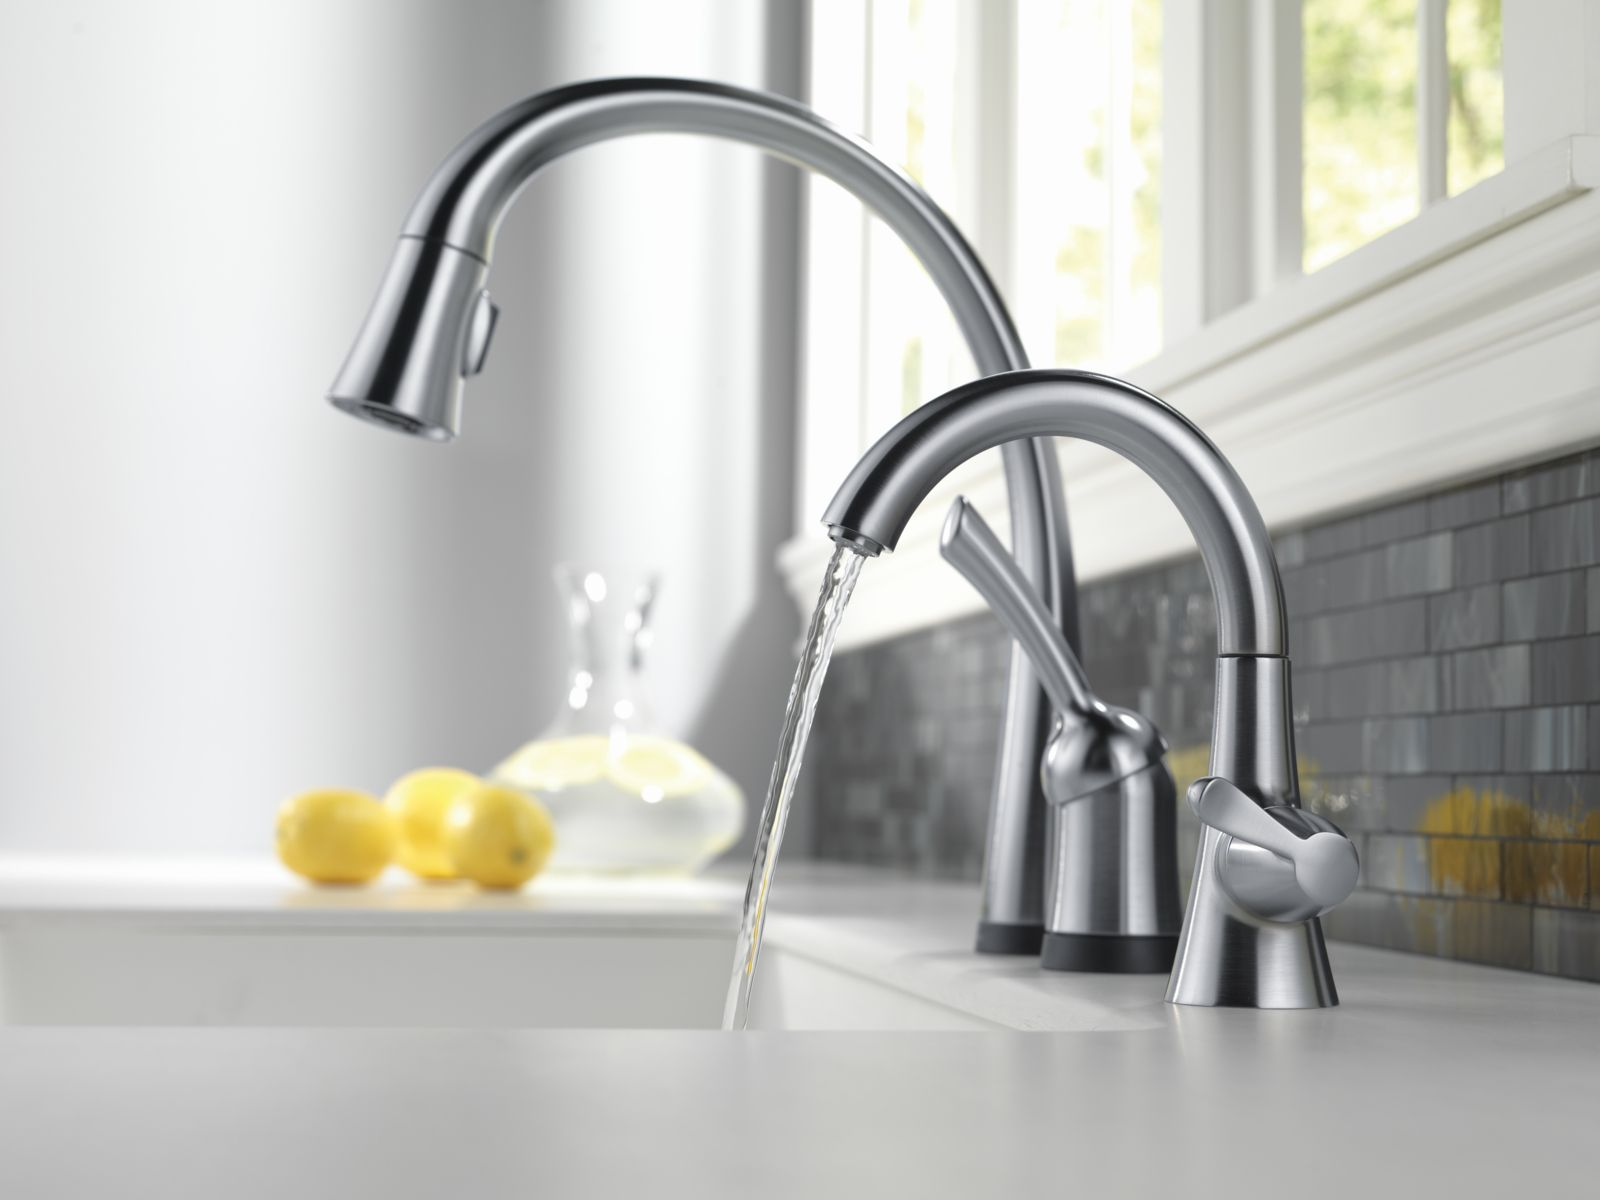 Our Transitional Beverage Faucet Is The Perfect Addition To Your Smart Kitchen Sink Delta Faucet Beverage Faucets Delta Faucets Faucet